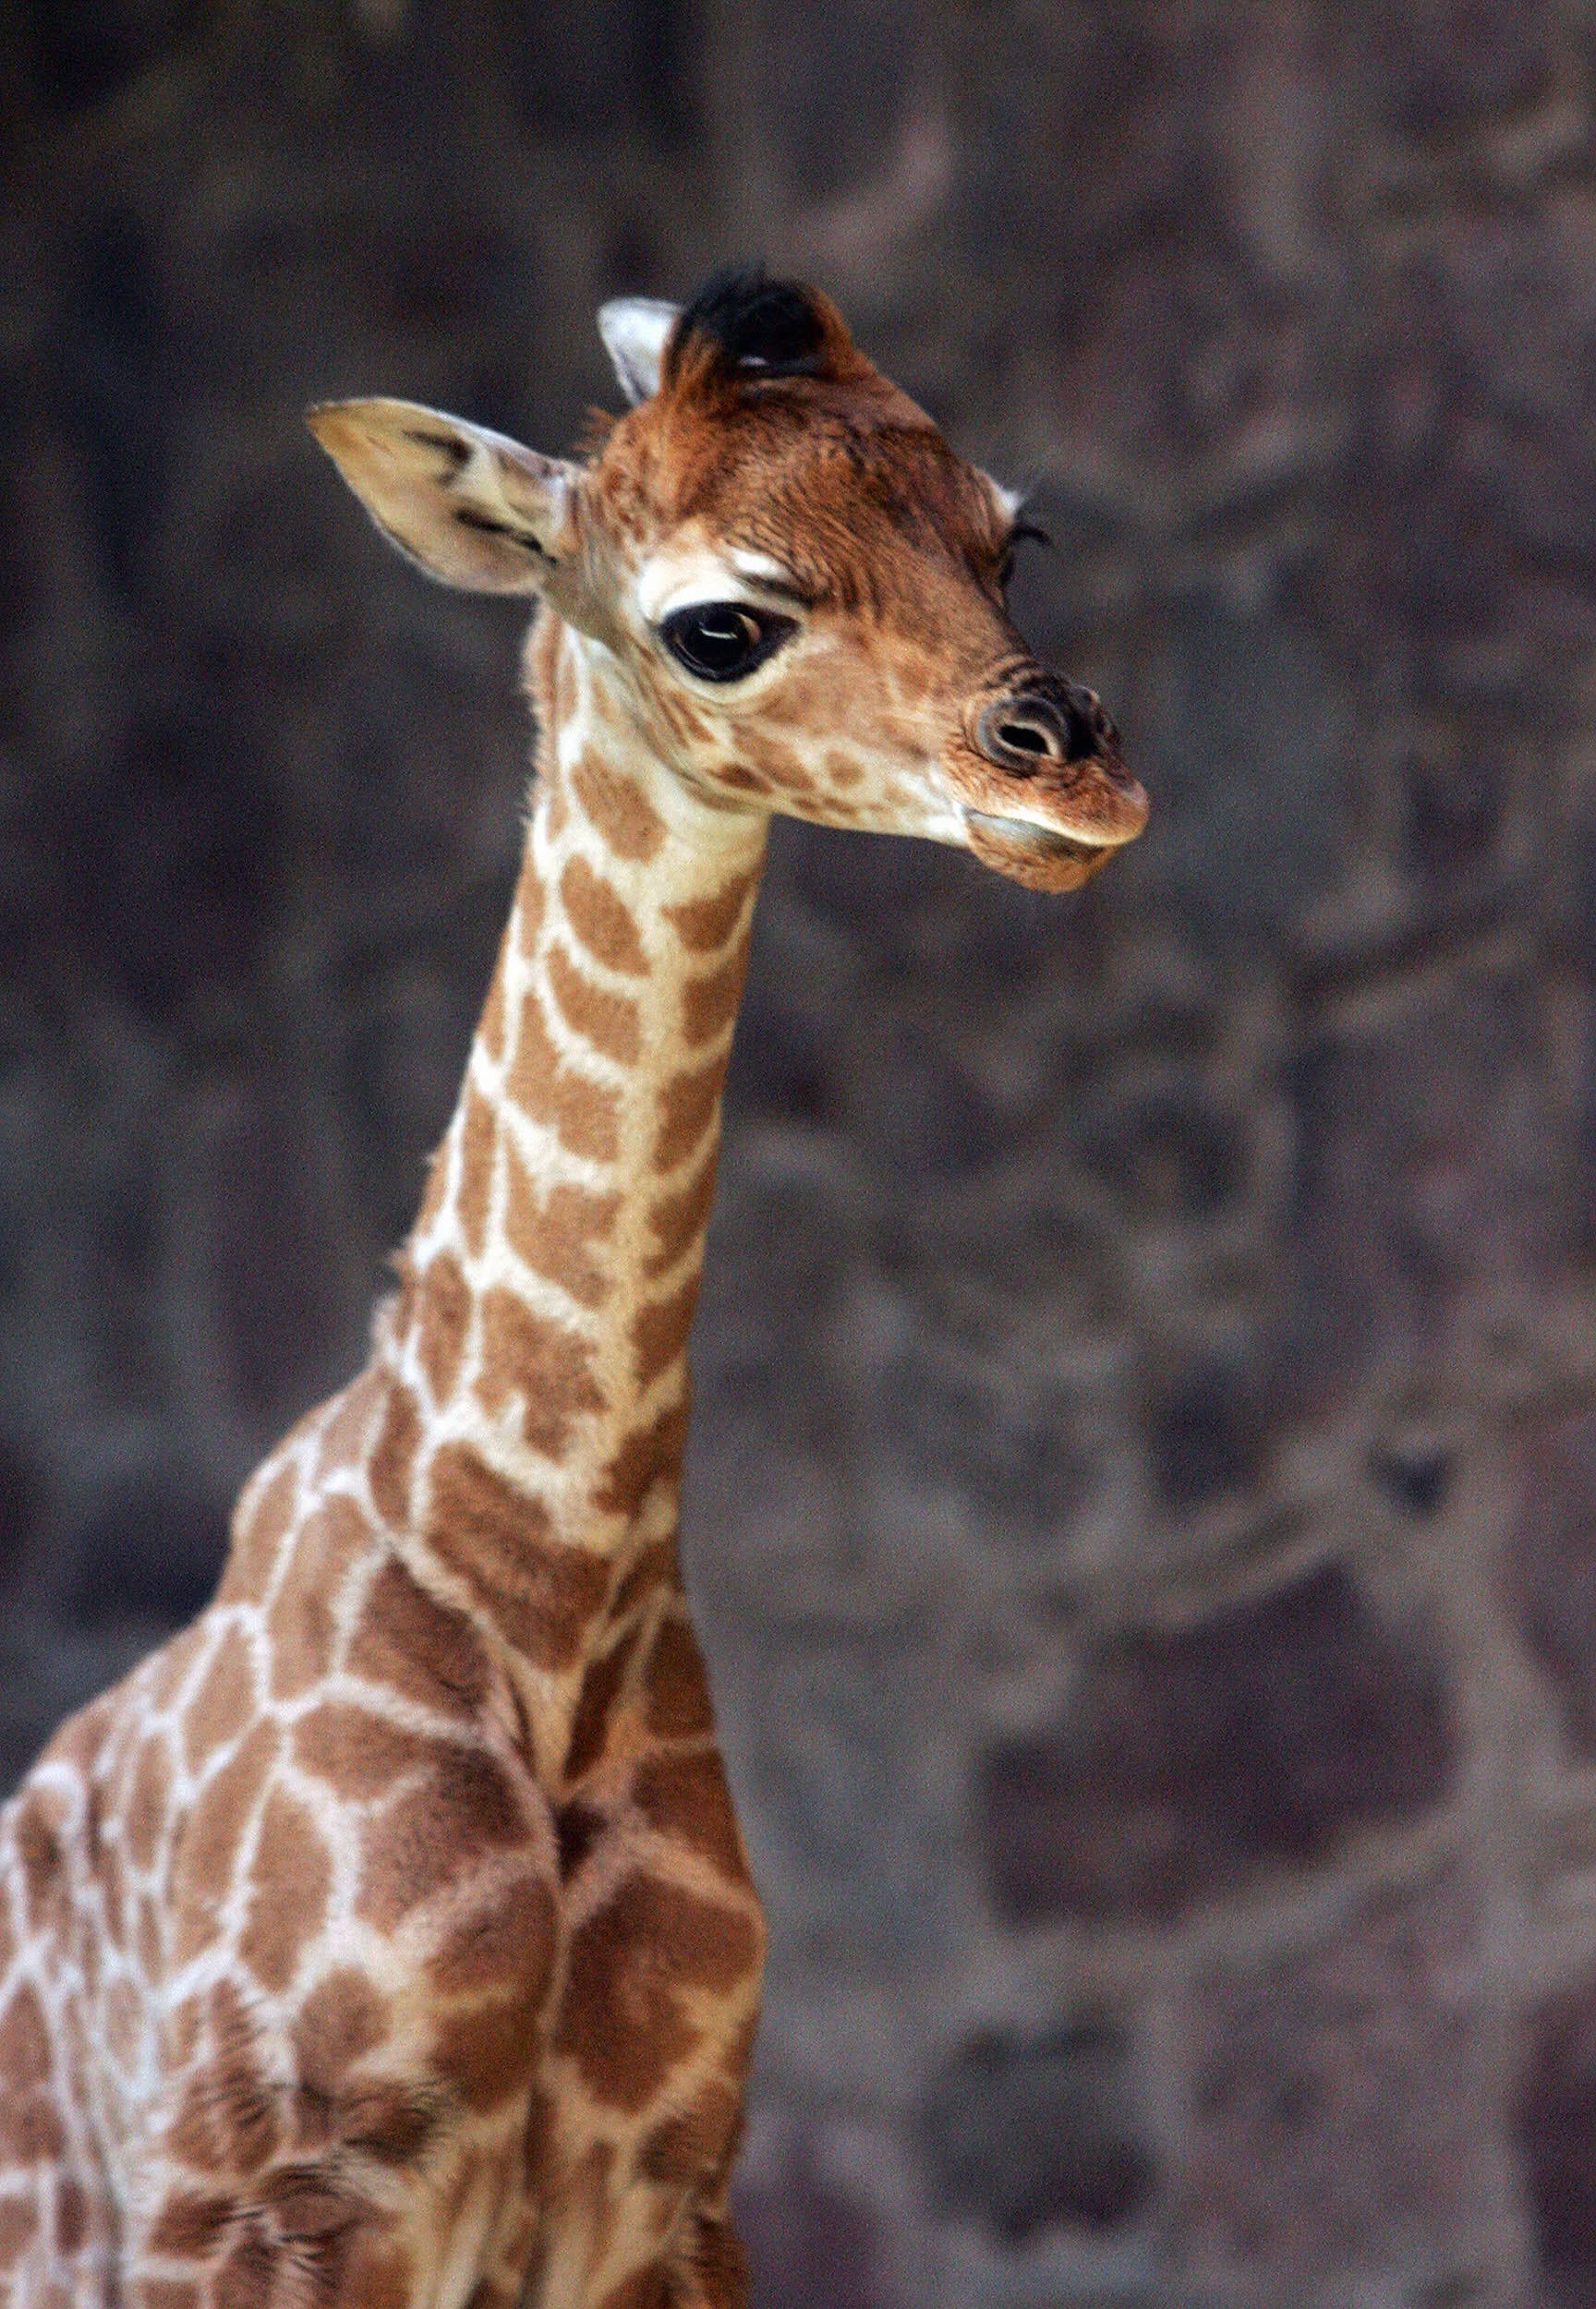 Baby Giraffe Goes for Sloppy Seconds